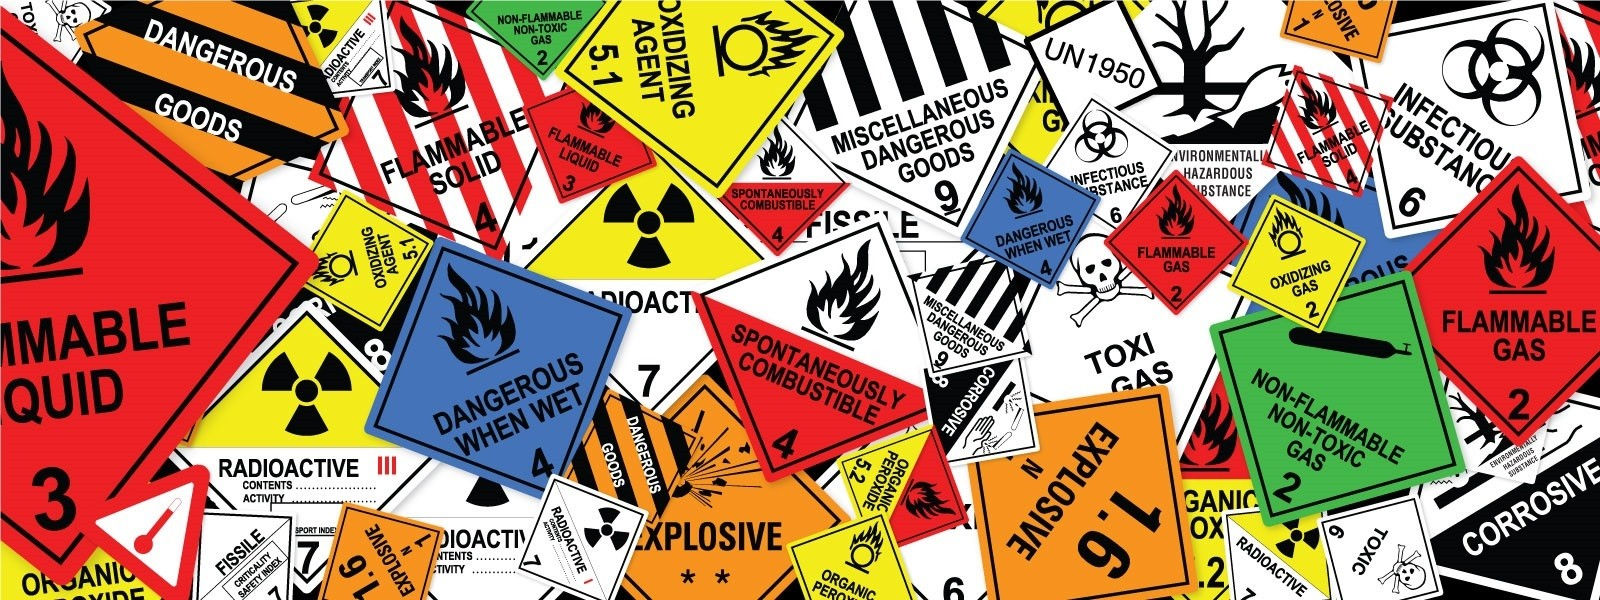 Hazardous Chemical signsand Labels